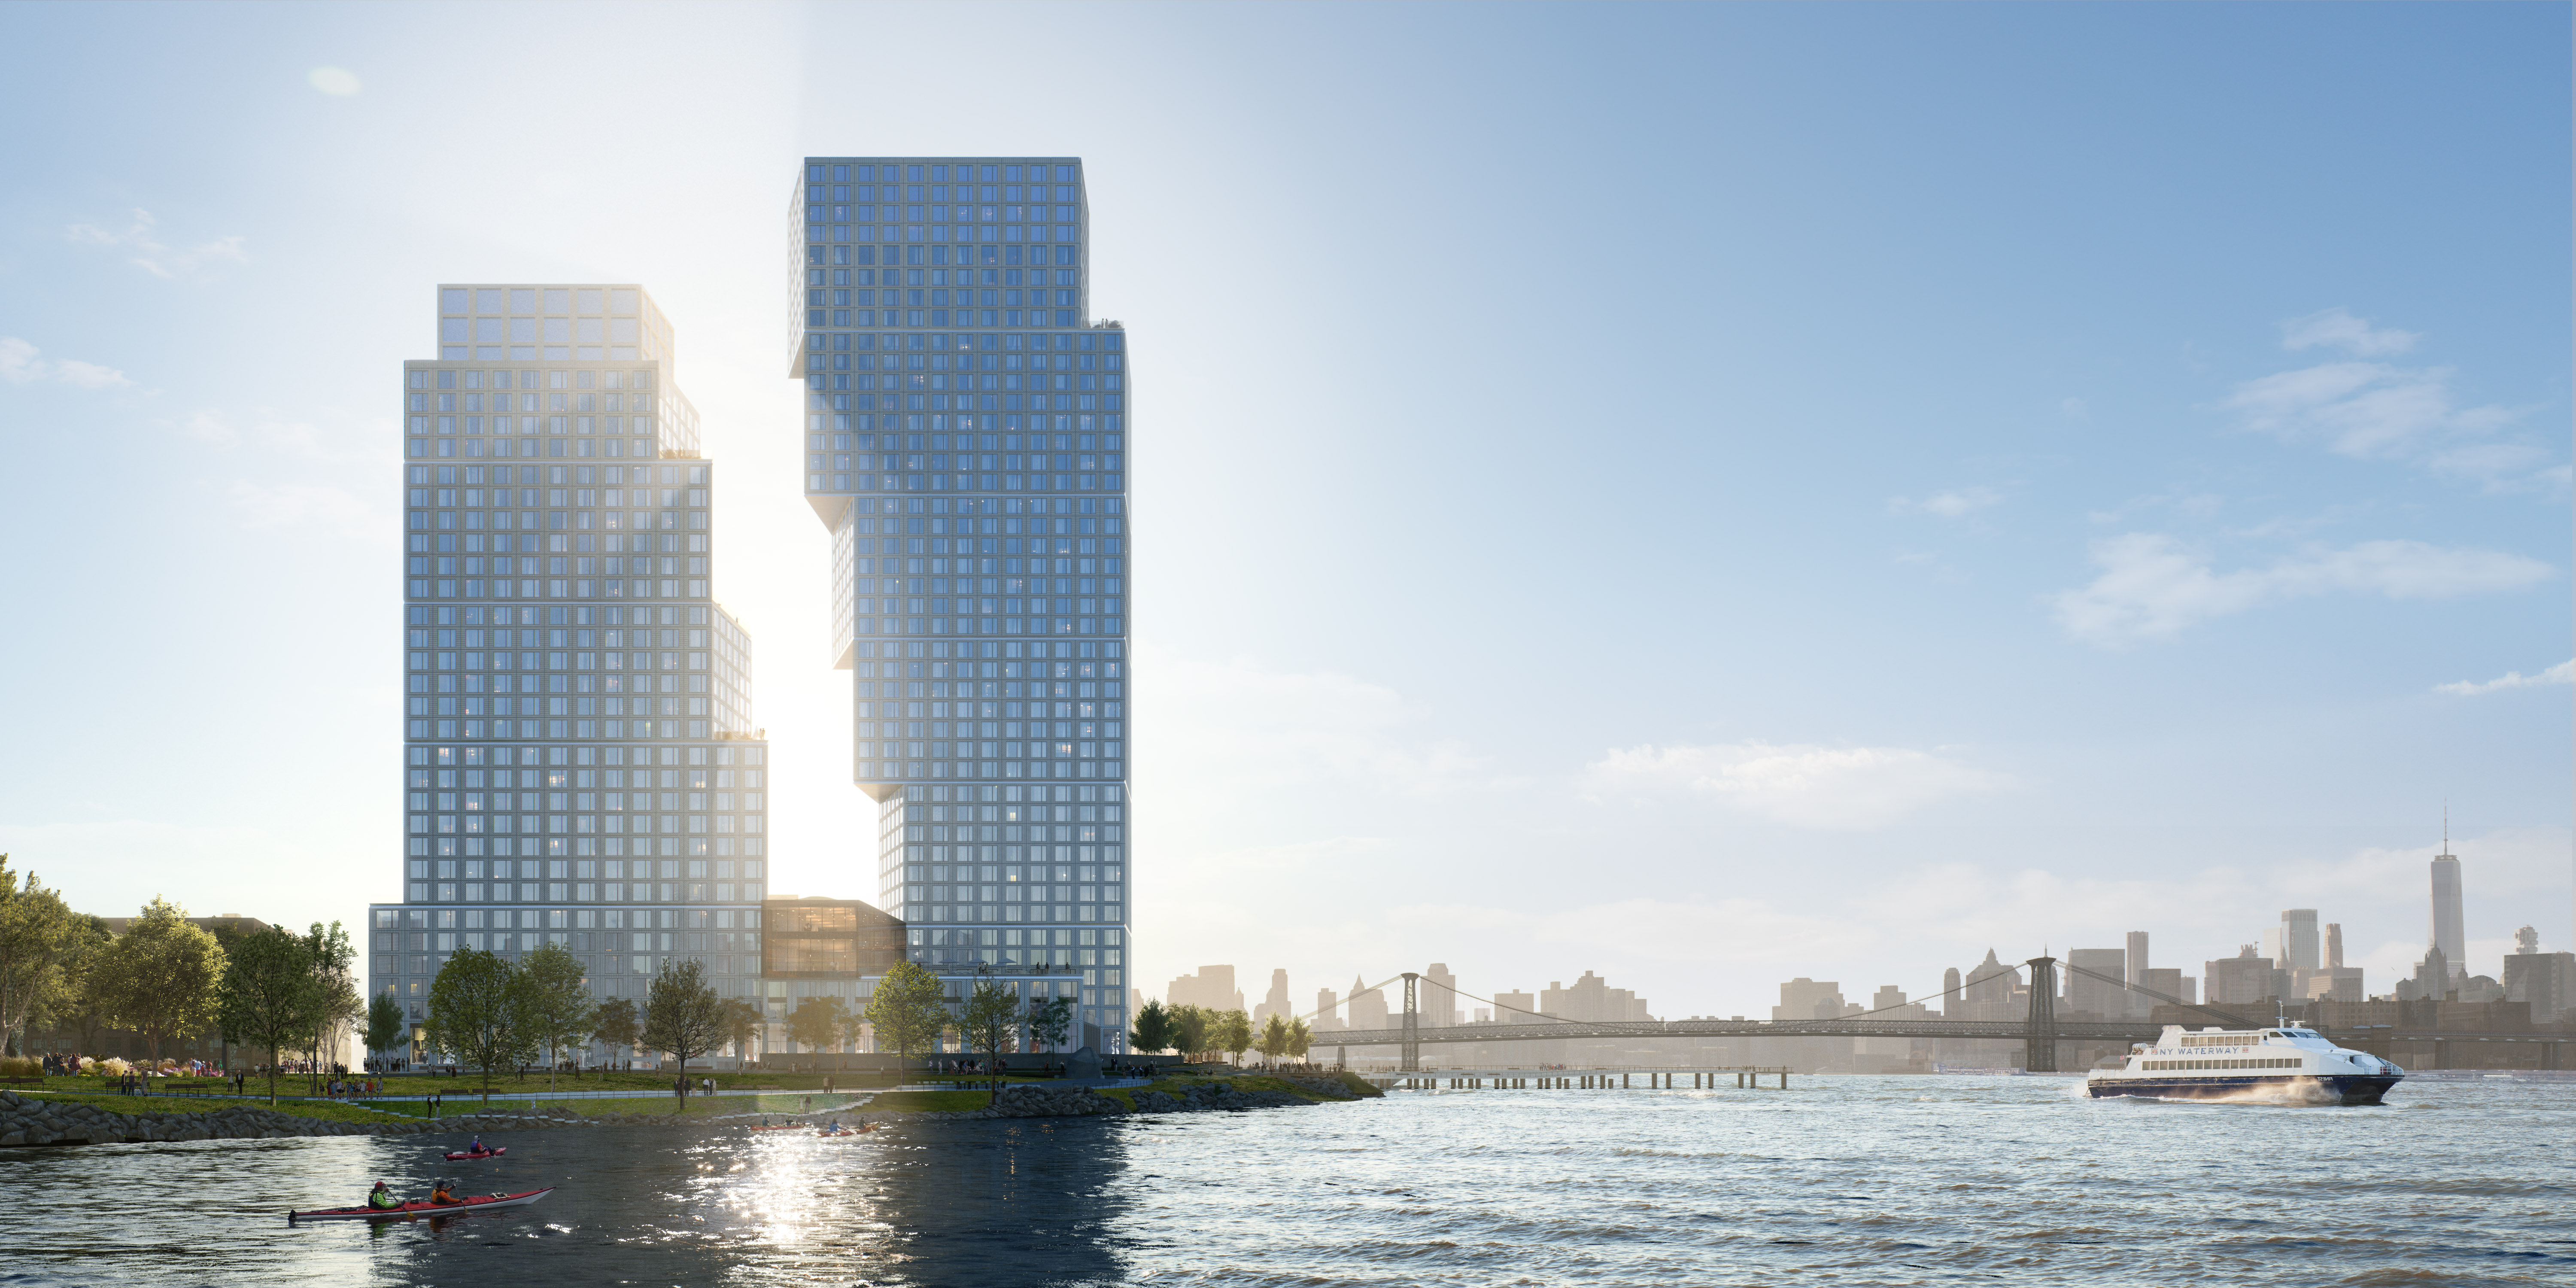 greenpoint landing, OMA, greenpoint, new developments